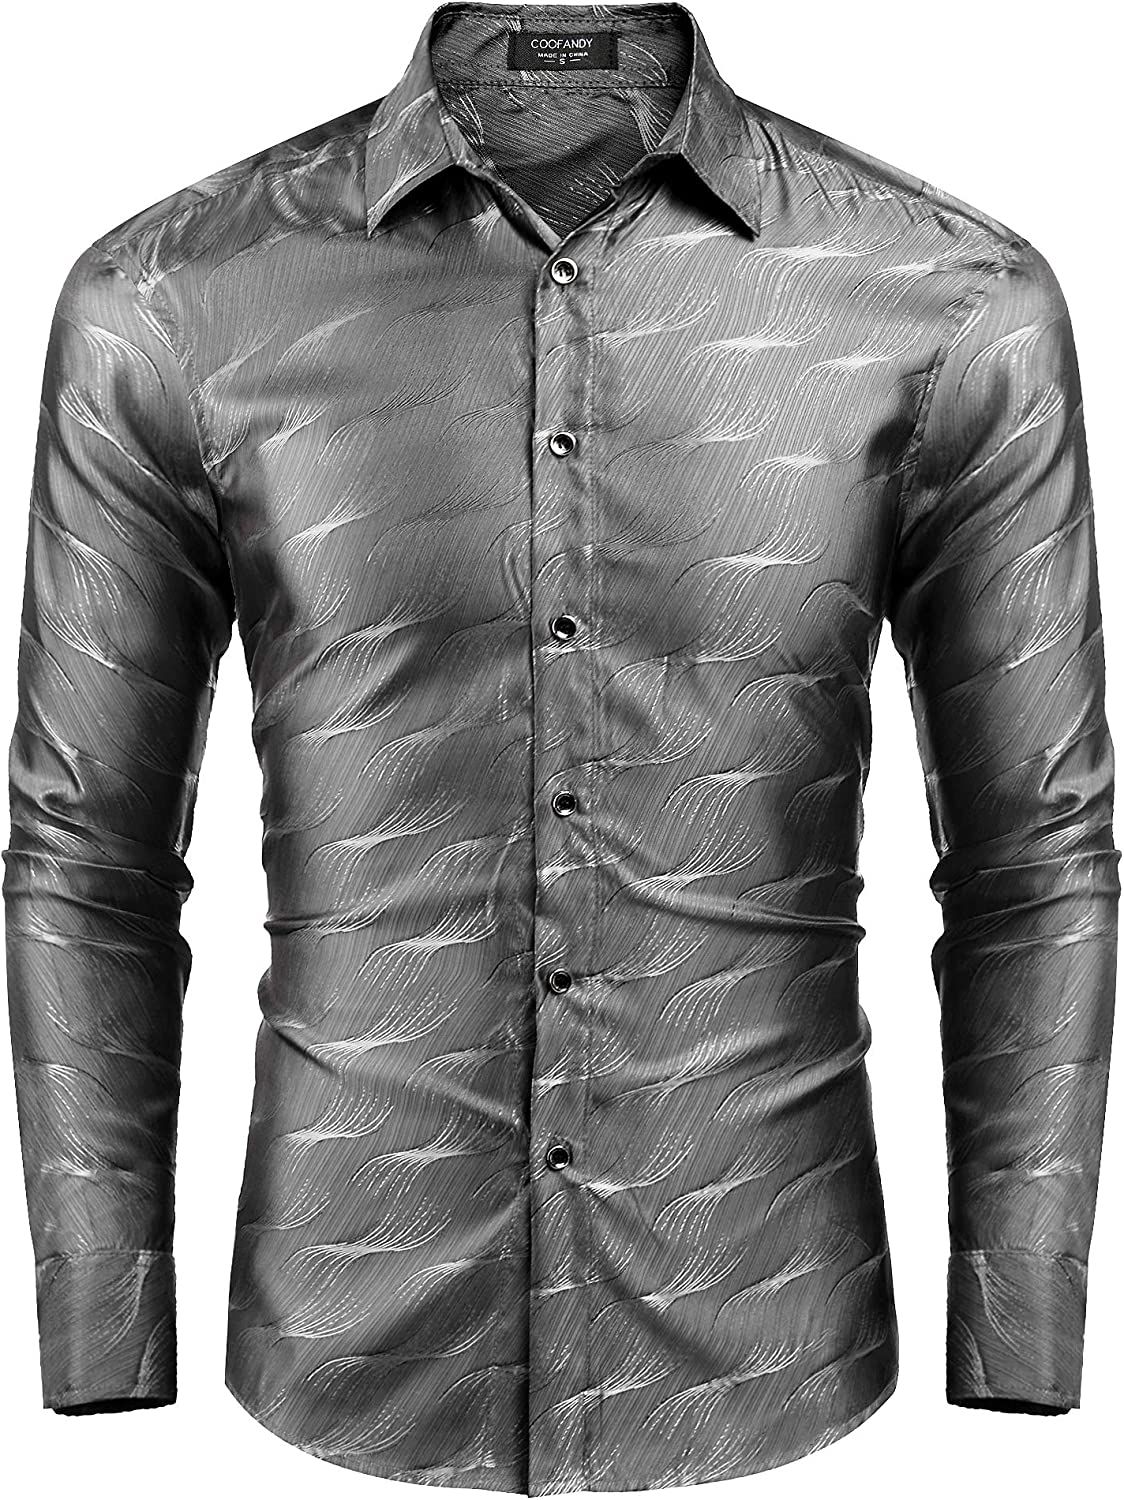 COOFANDY Men's Luxury Dress Shirt Long Sleeve Slim Fit Wrinkle-Free Business Button Down Shirts